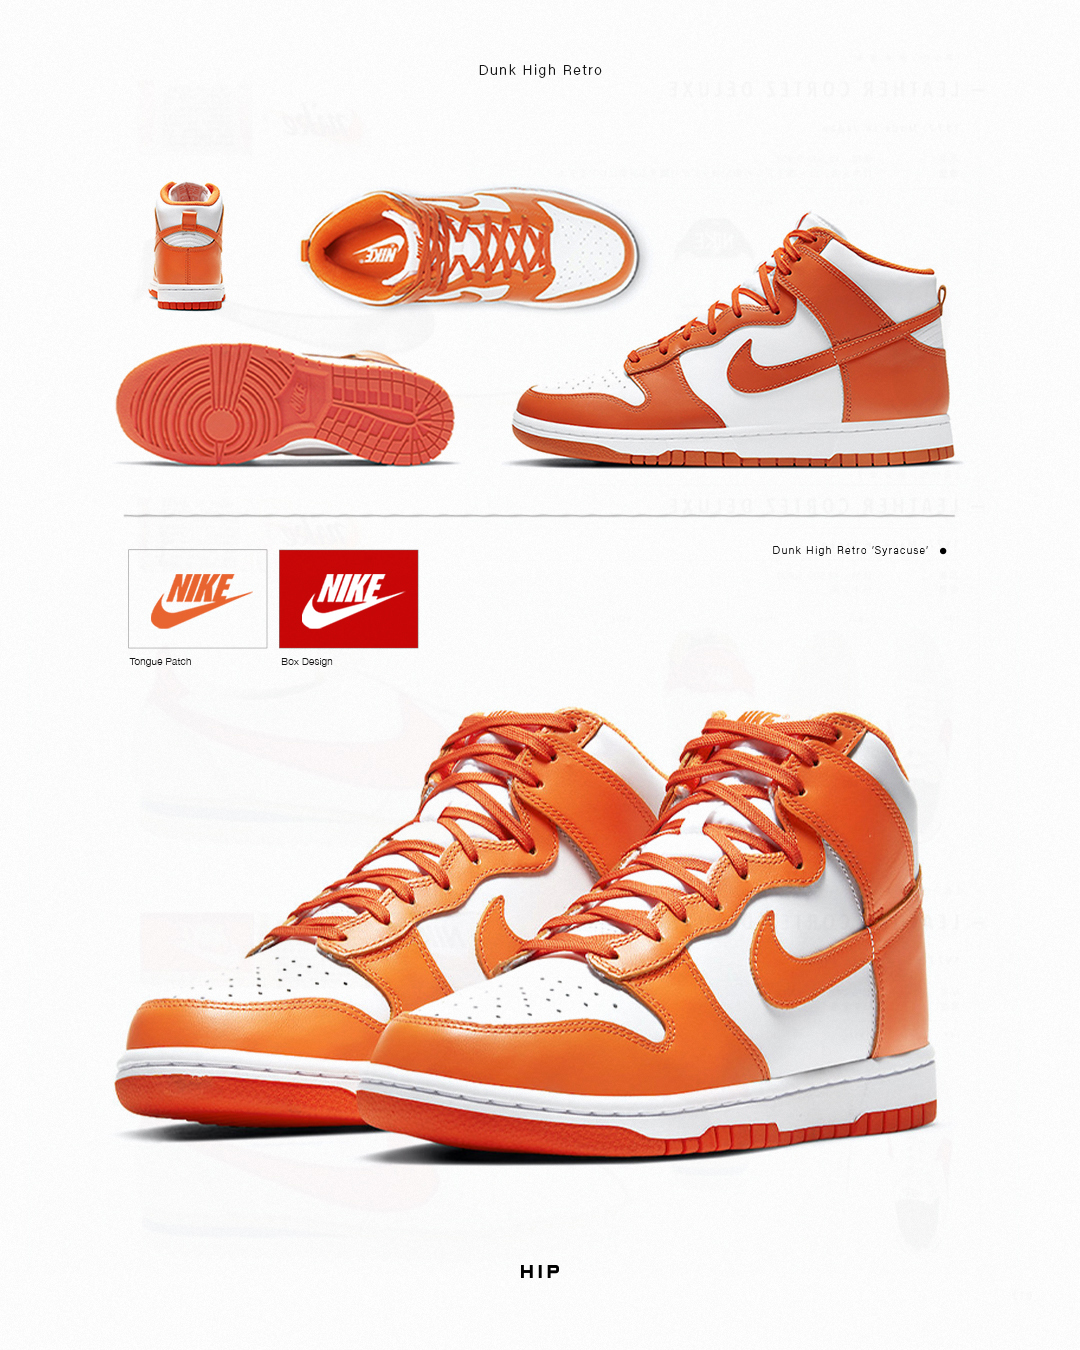 Nike Dunk Hi Retro 'White & Orange Blaze'  HIP raffle